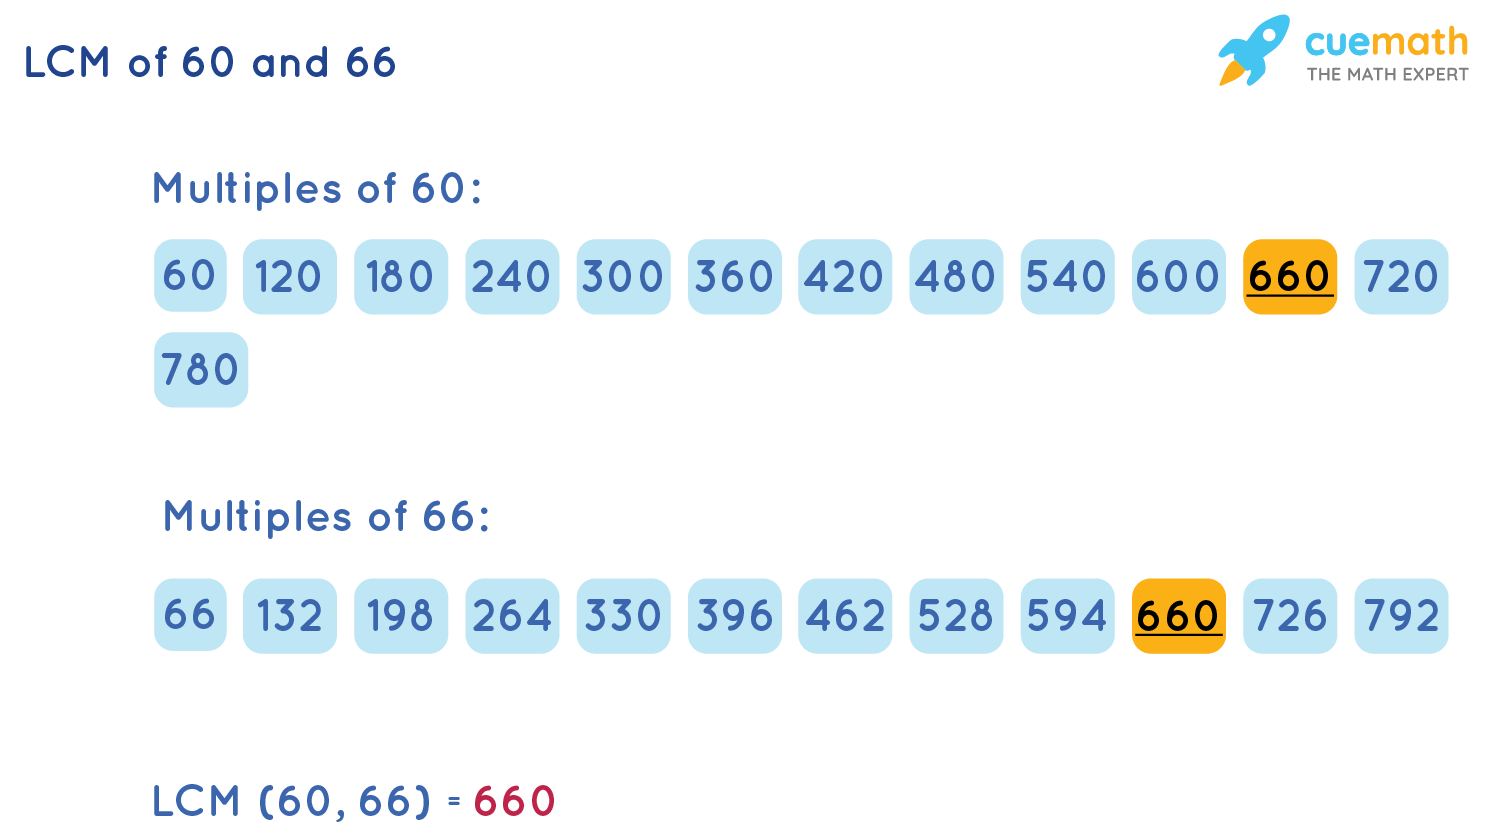 LCM of 60 and 66 by Listing Method